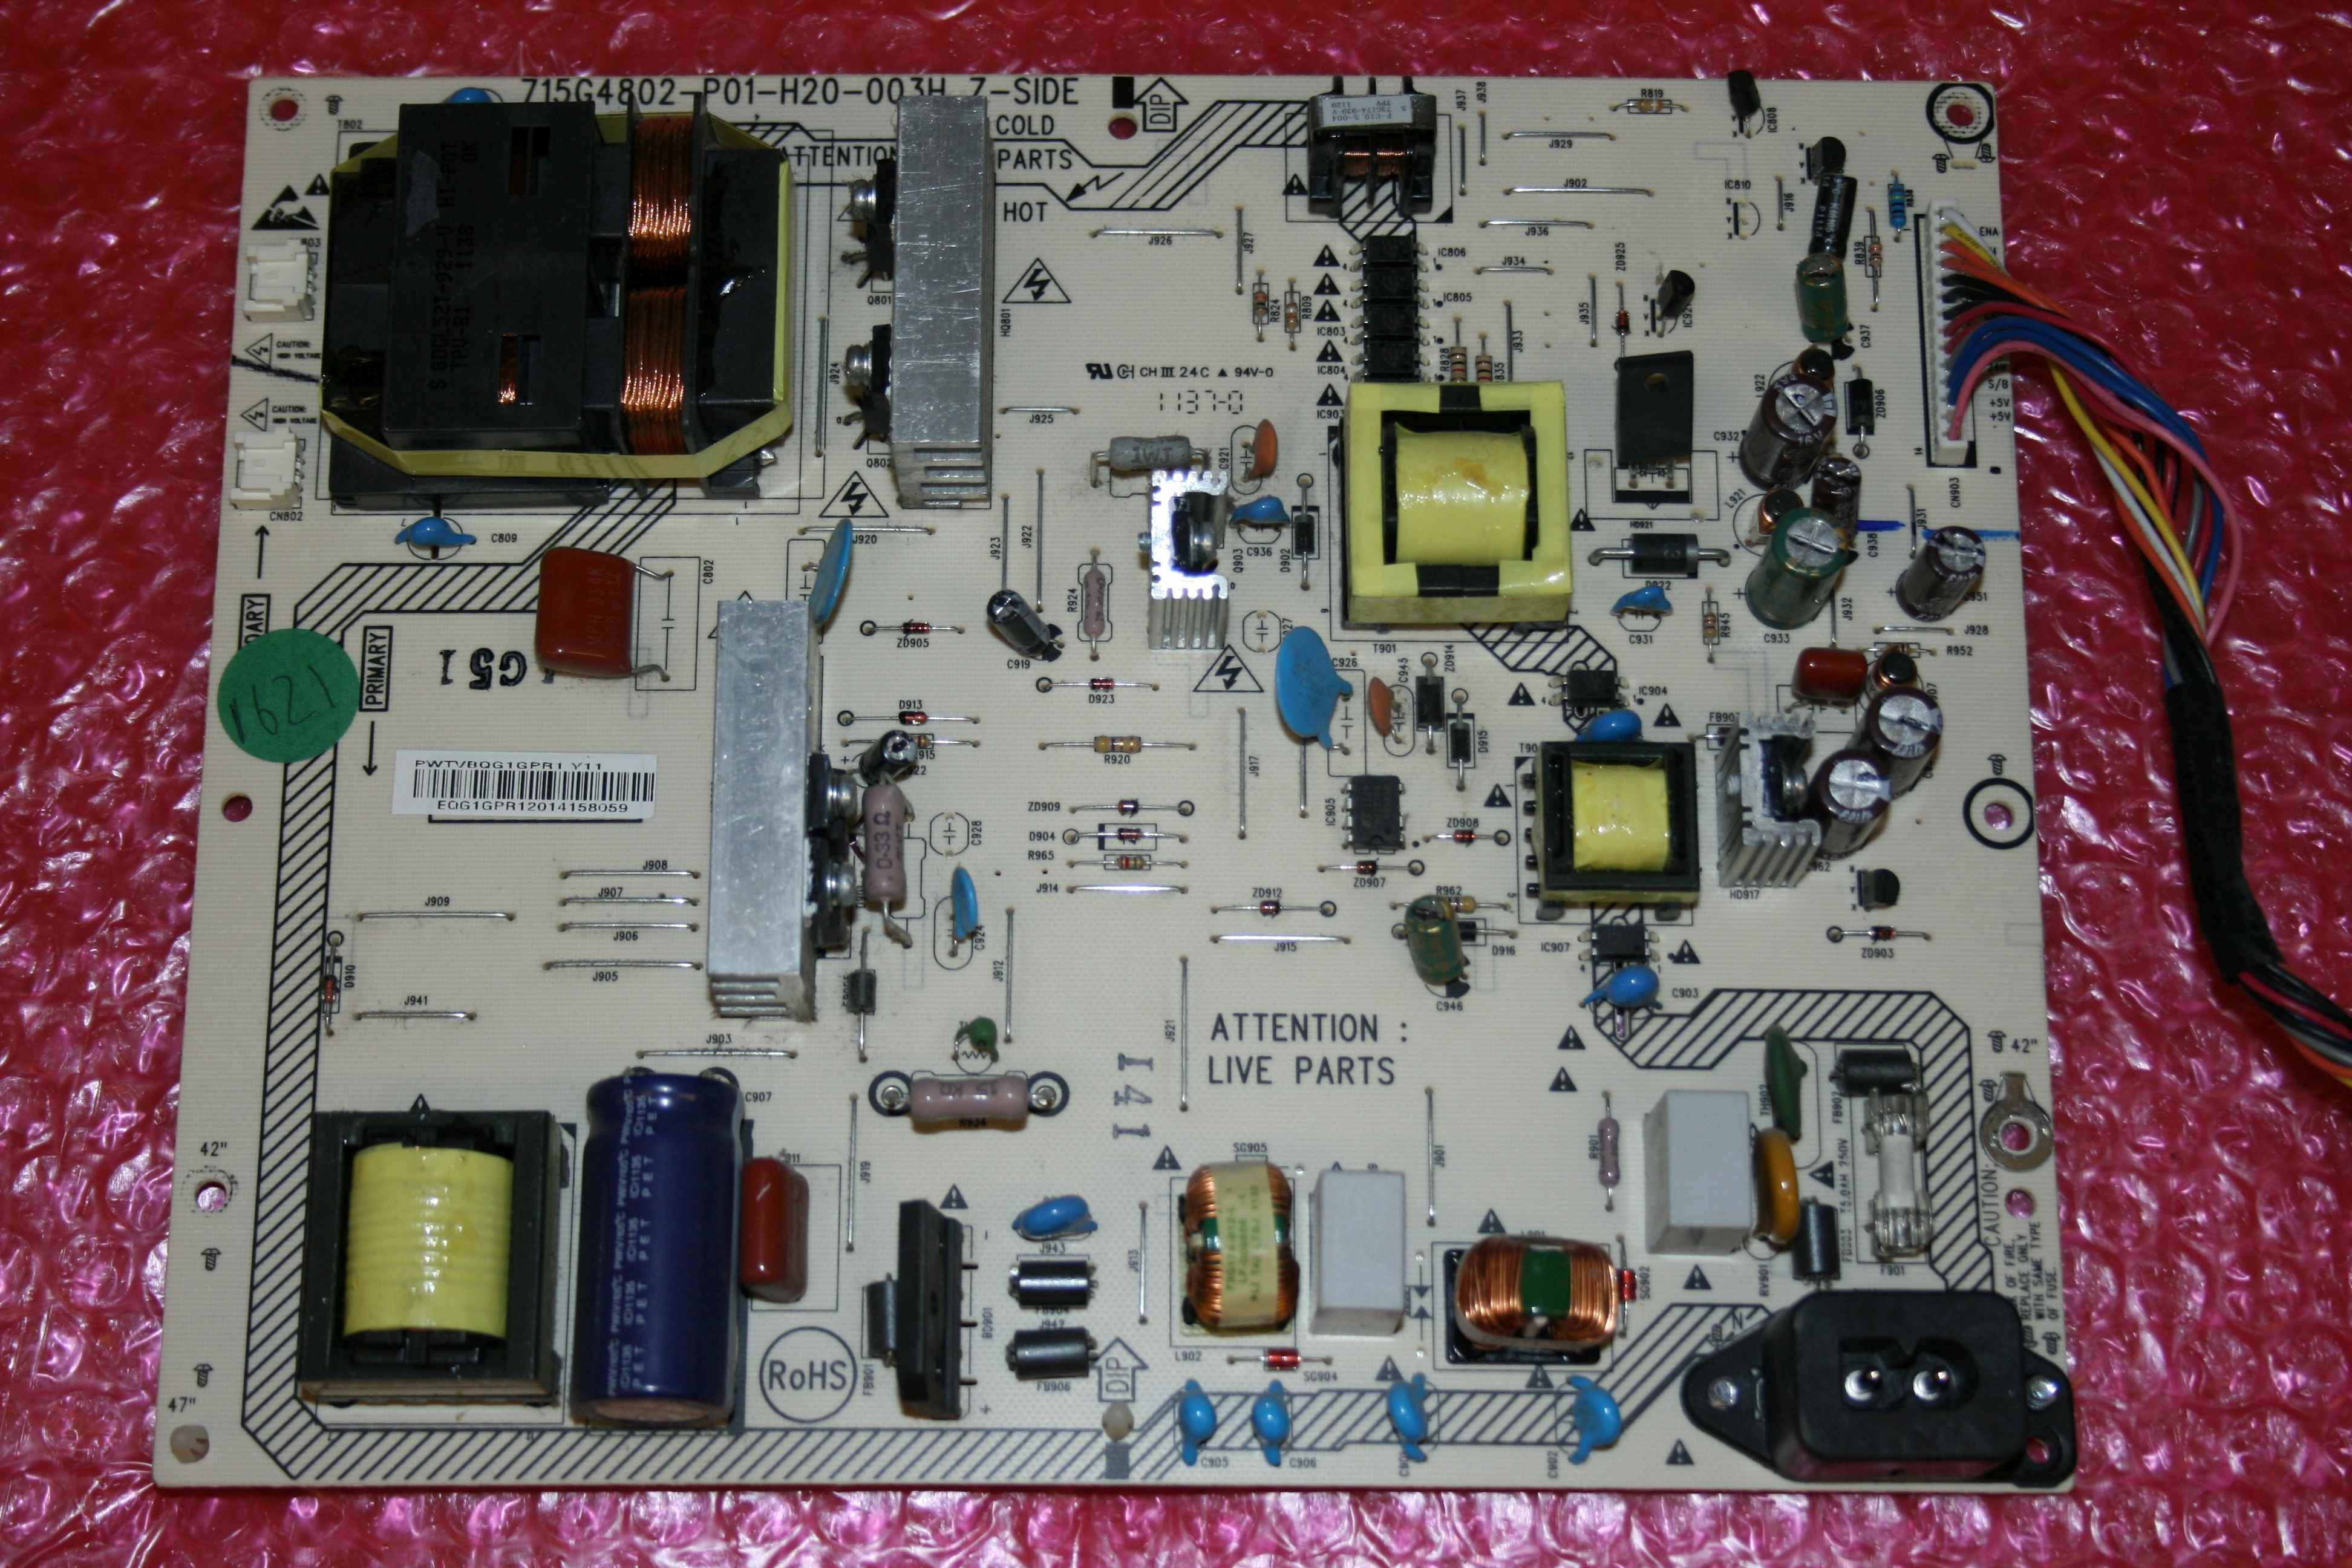 715G4802-P01-H20-003H LED TV POWER SUPPLY BOARD